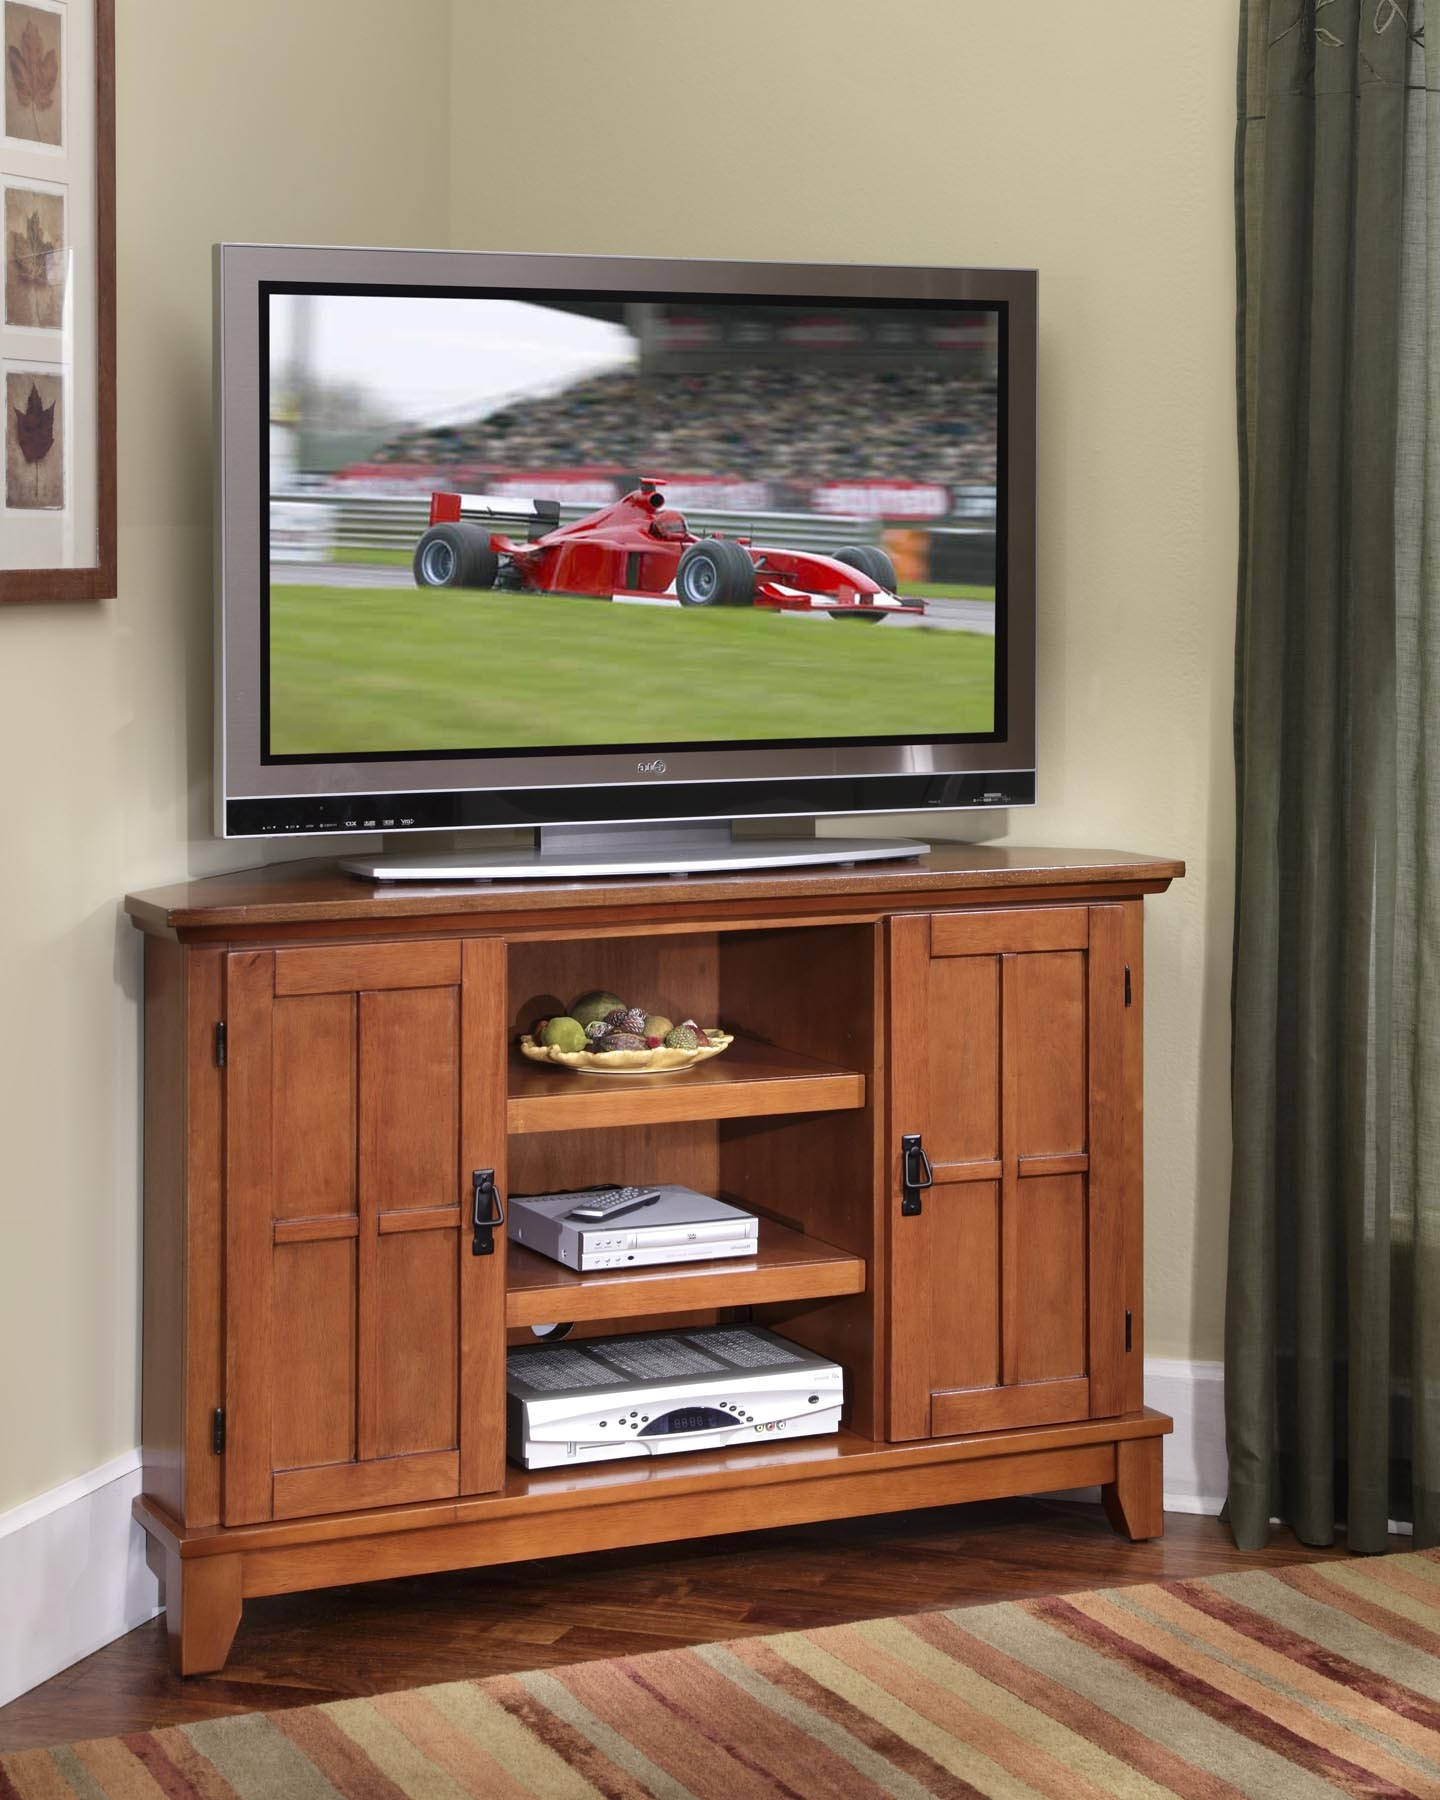 Oak Tv Stand Walmart Solid Wood Stands For Flat Screens Light Within Well Known Cheap Oak Tv Stands (View 15 of 20)